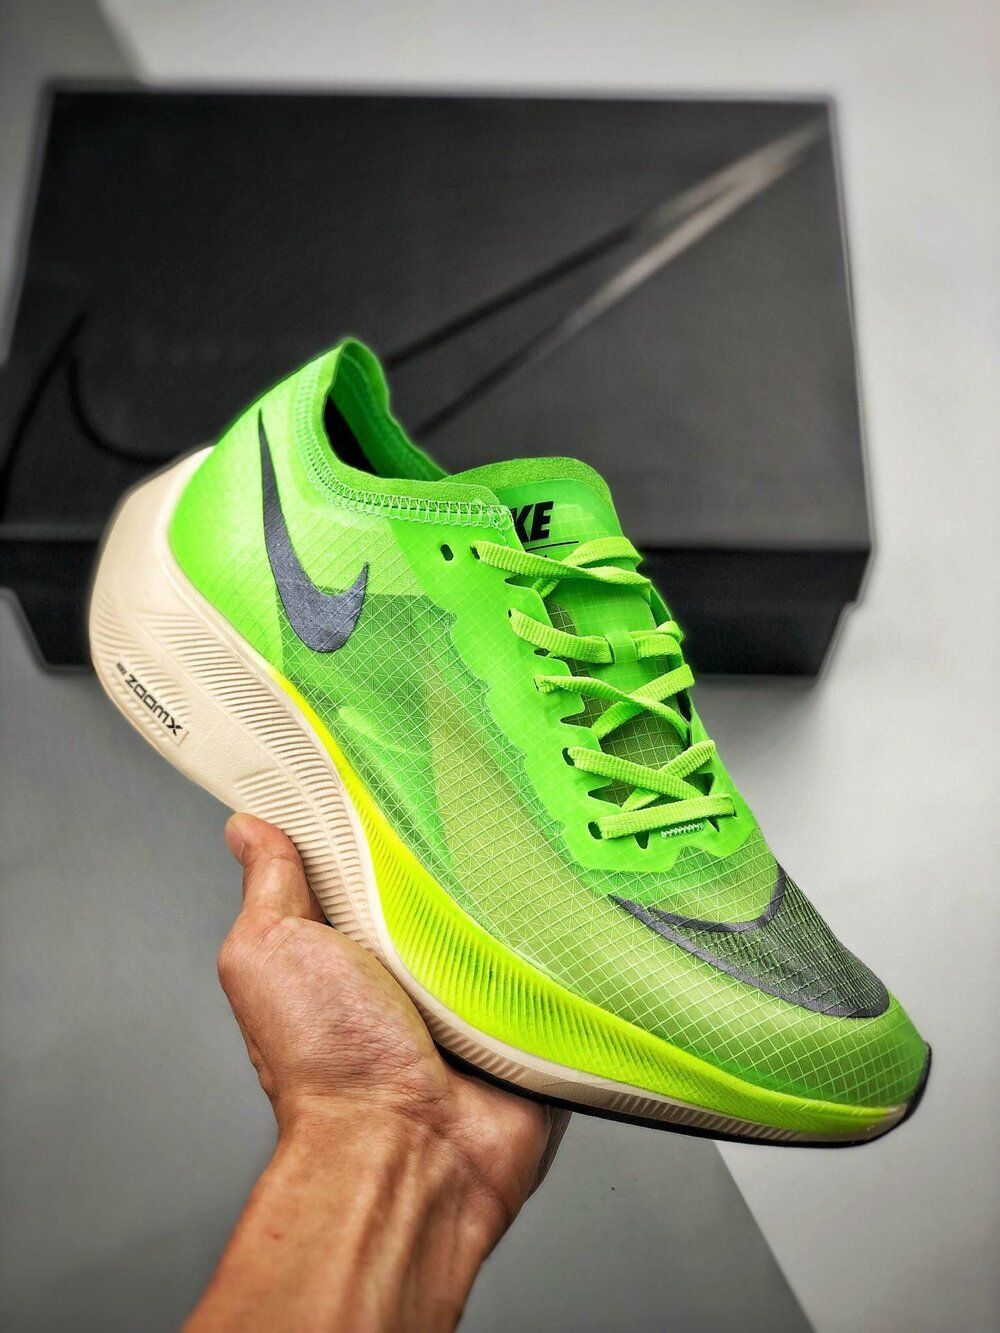 Nike Zoomx Vaporfly Next Electric Green Sale Price 187 50 Retail 250 Free Shipping Use Code Air25 At Check Trending Sneakers Nike Runnning Shoes